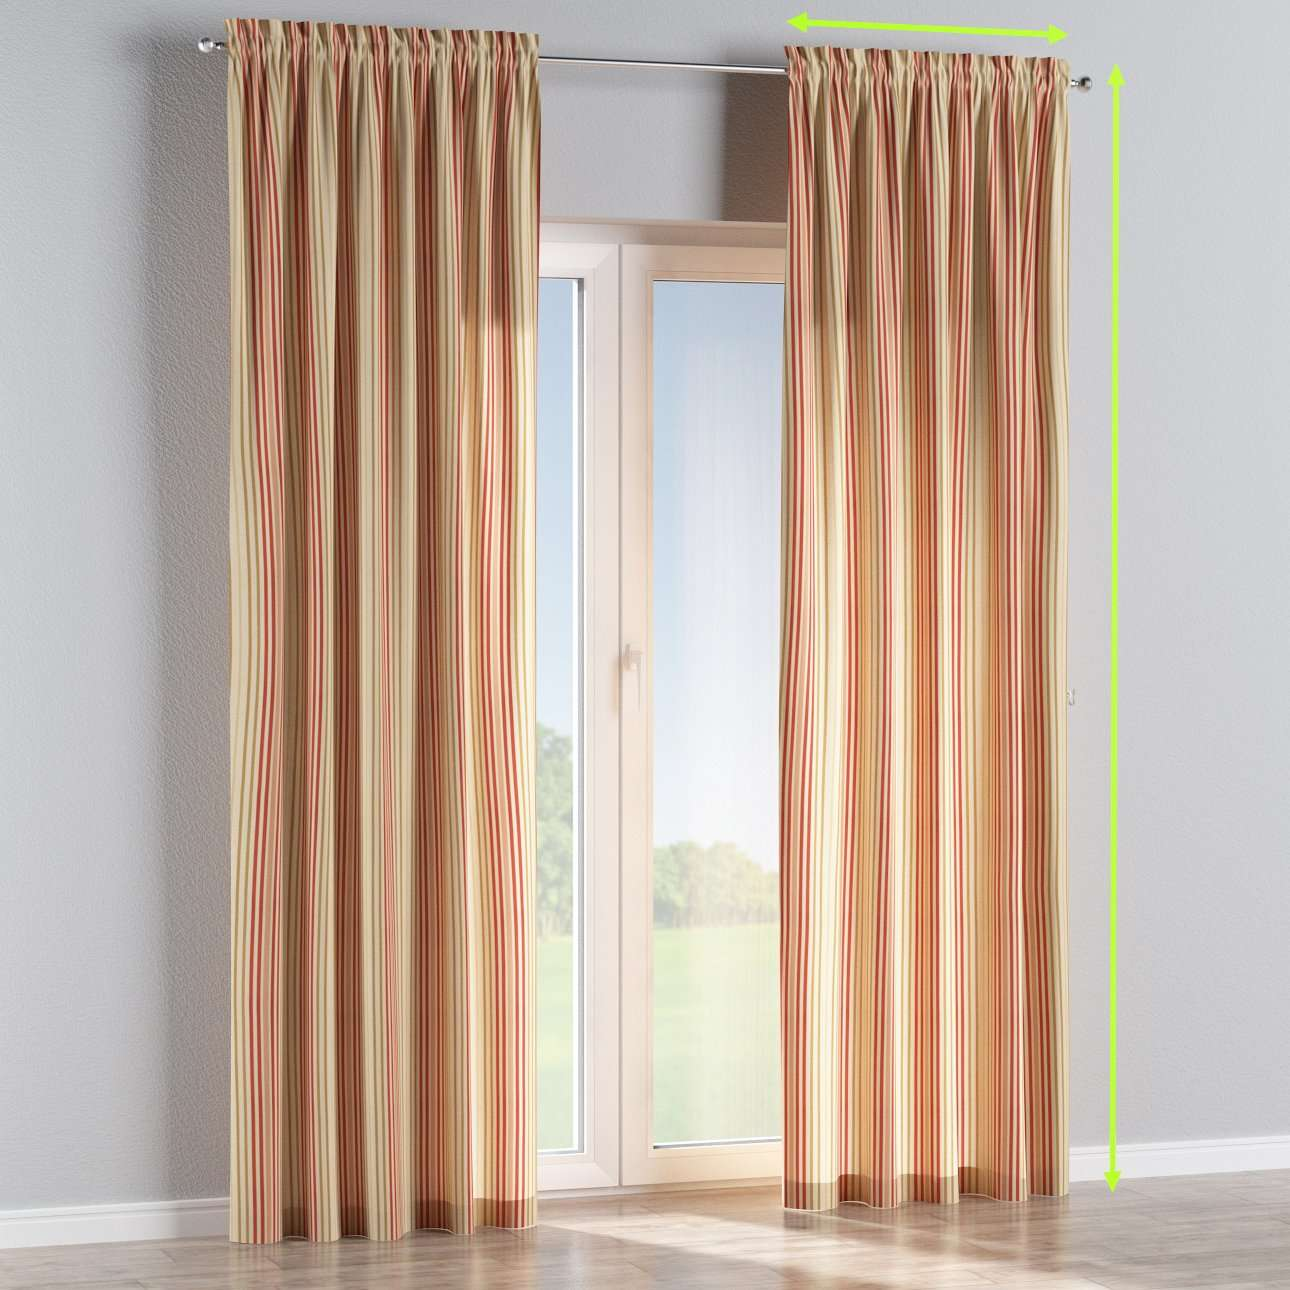 Slot and frill curtains in collection Londres, fabric: 122-05